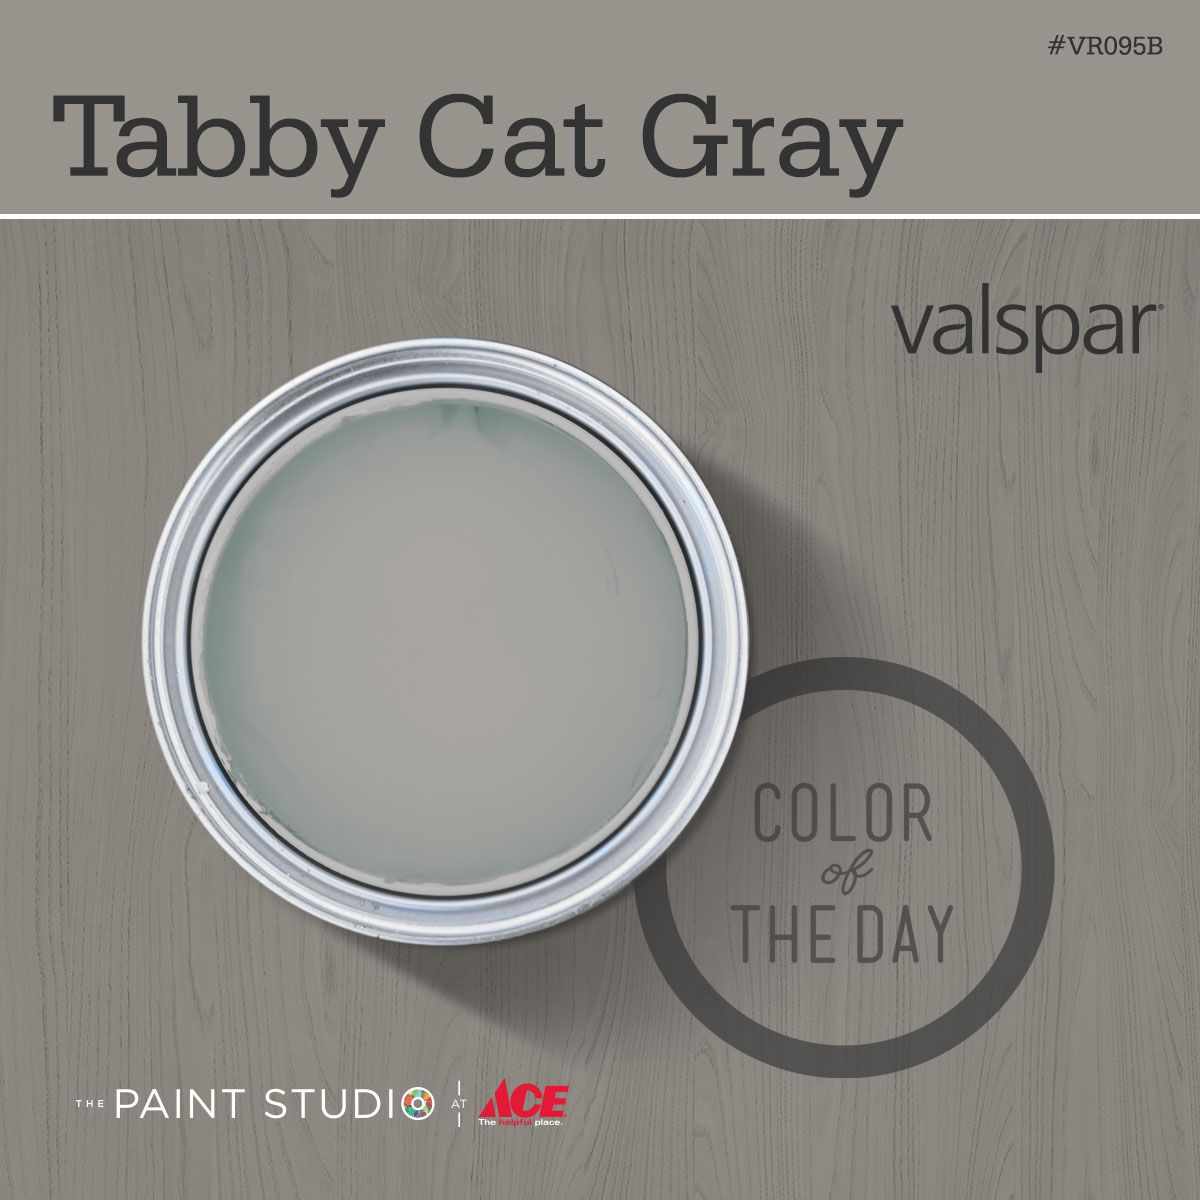 Color of the Day Tabby Cat Gray by Valspar